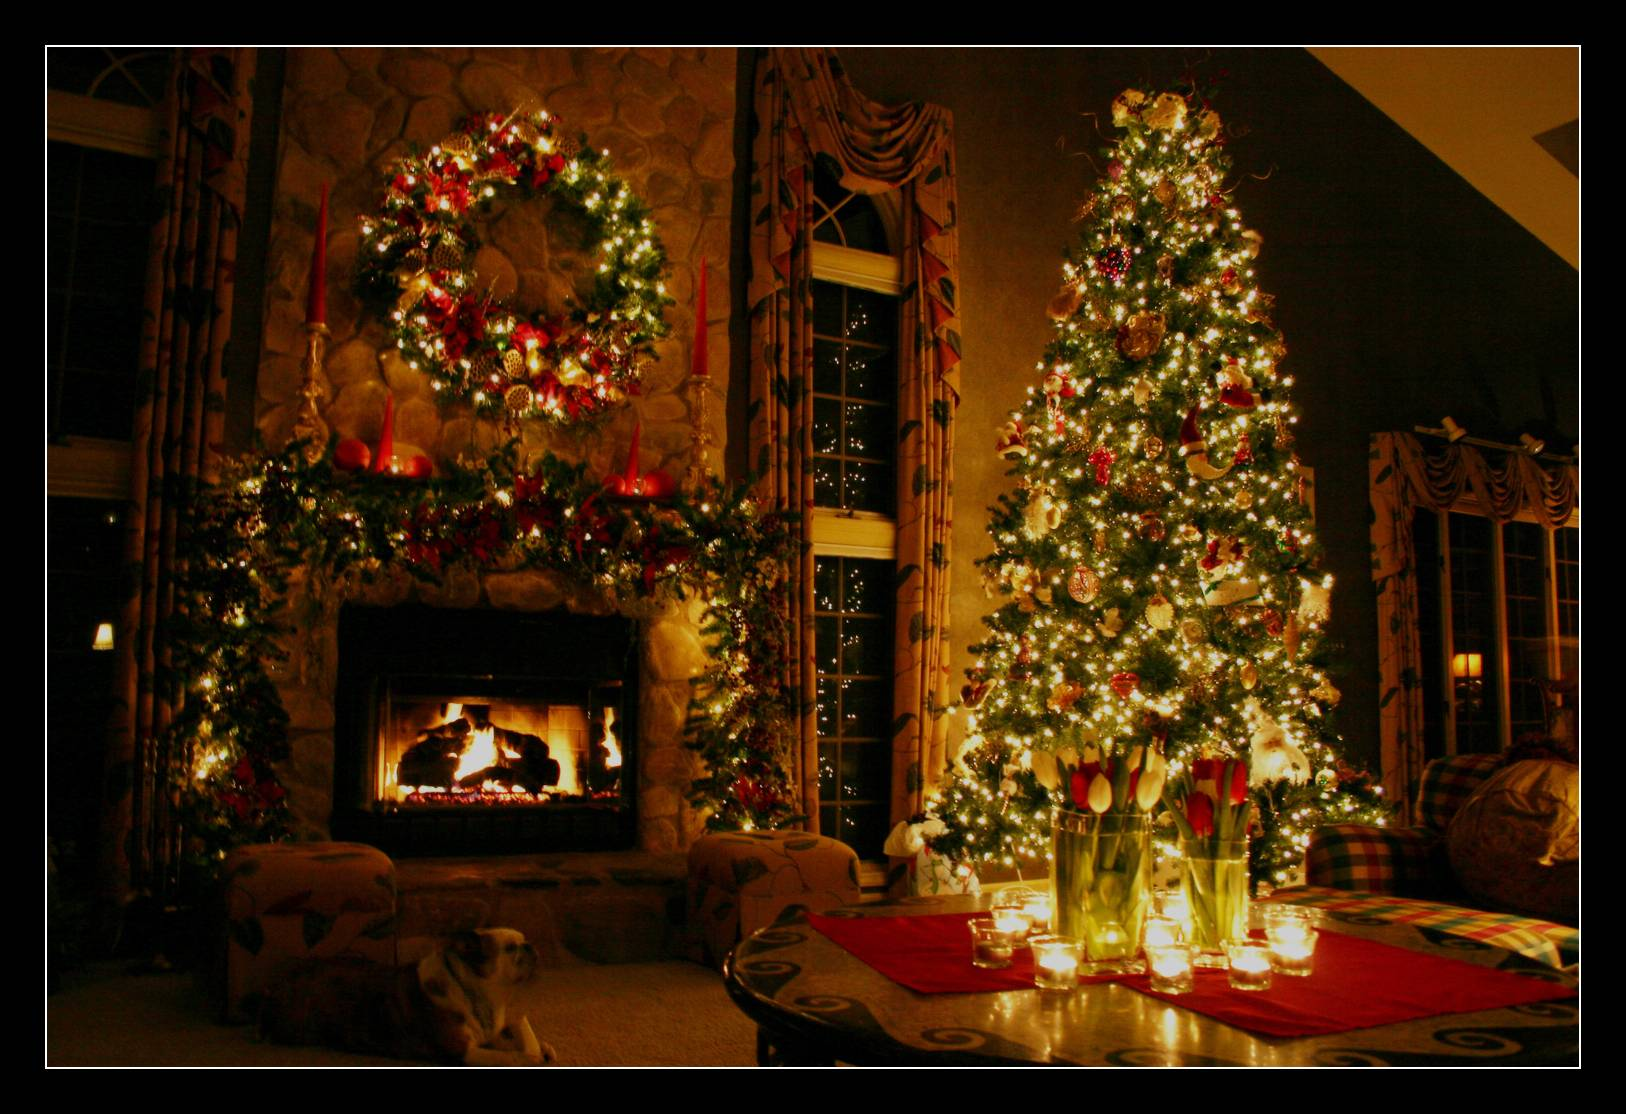 Christmas Fireplace Backgrounds